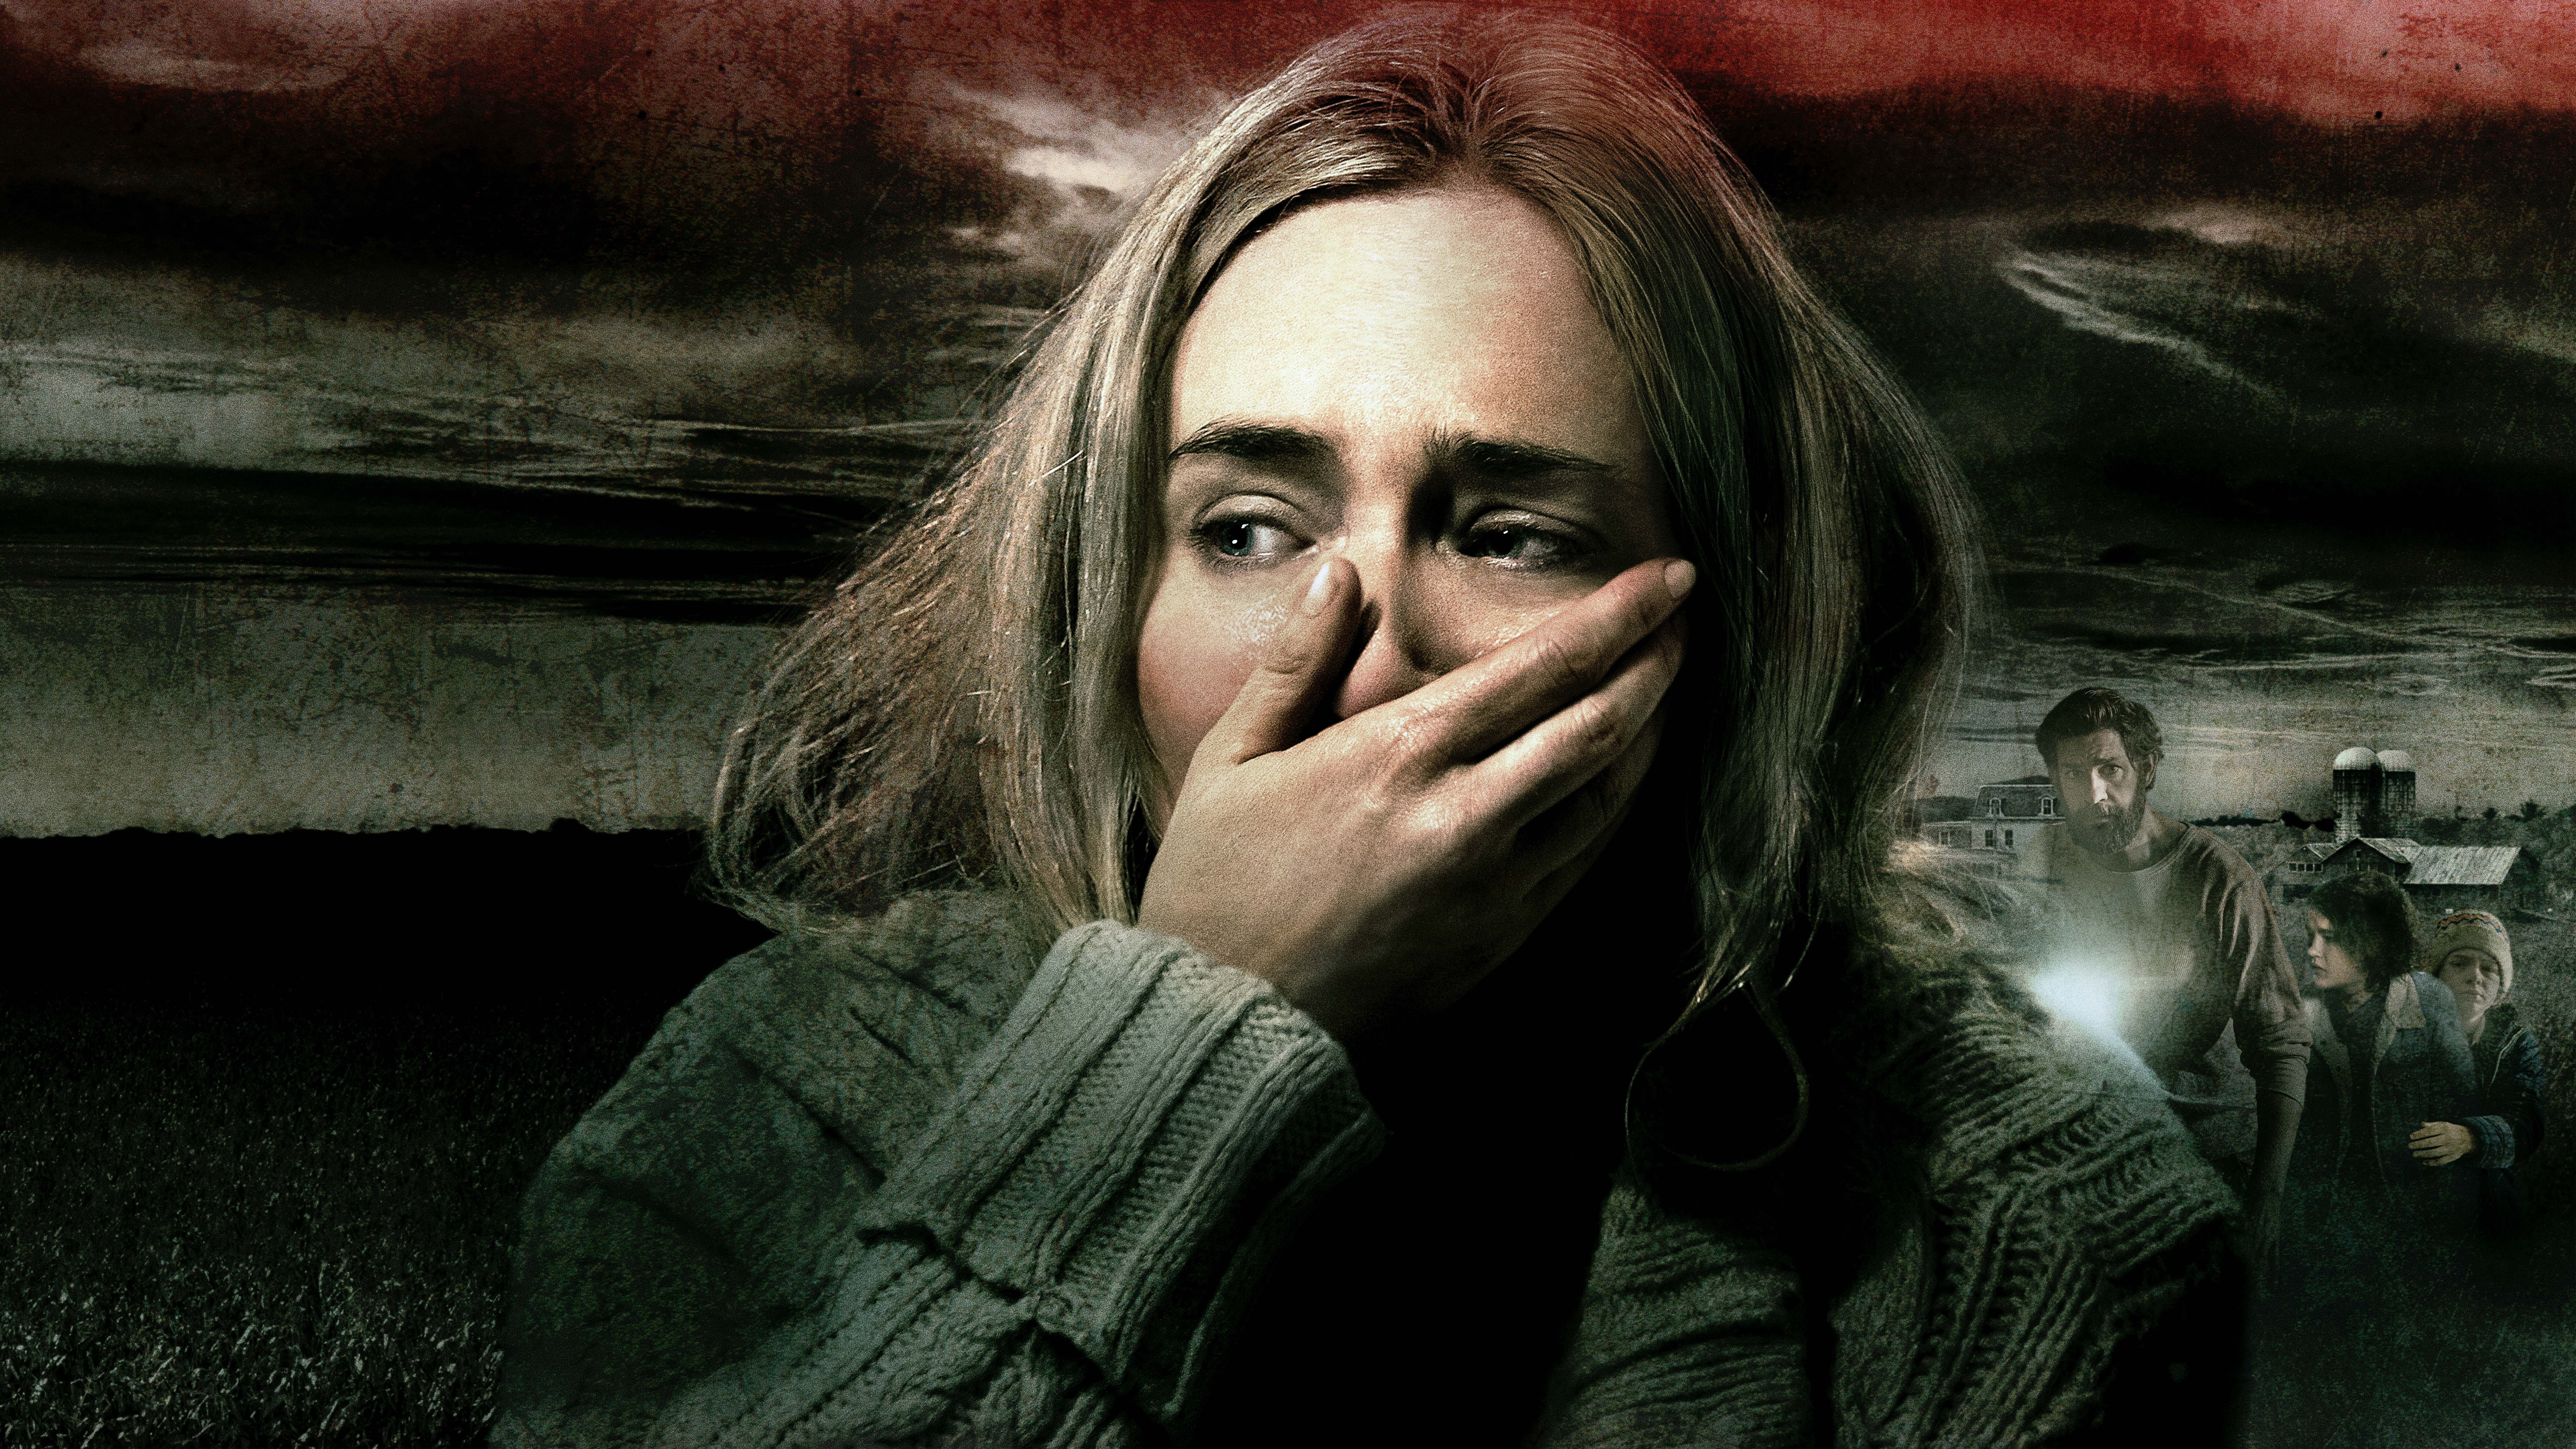 A Quiet Place 2018 Movie Wallpaper Hd Movies 4k Wallpapers